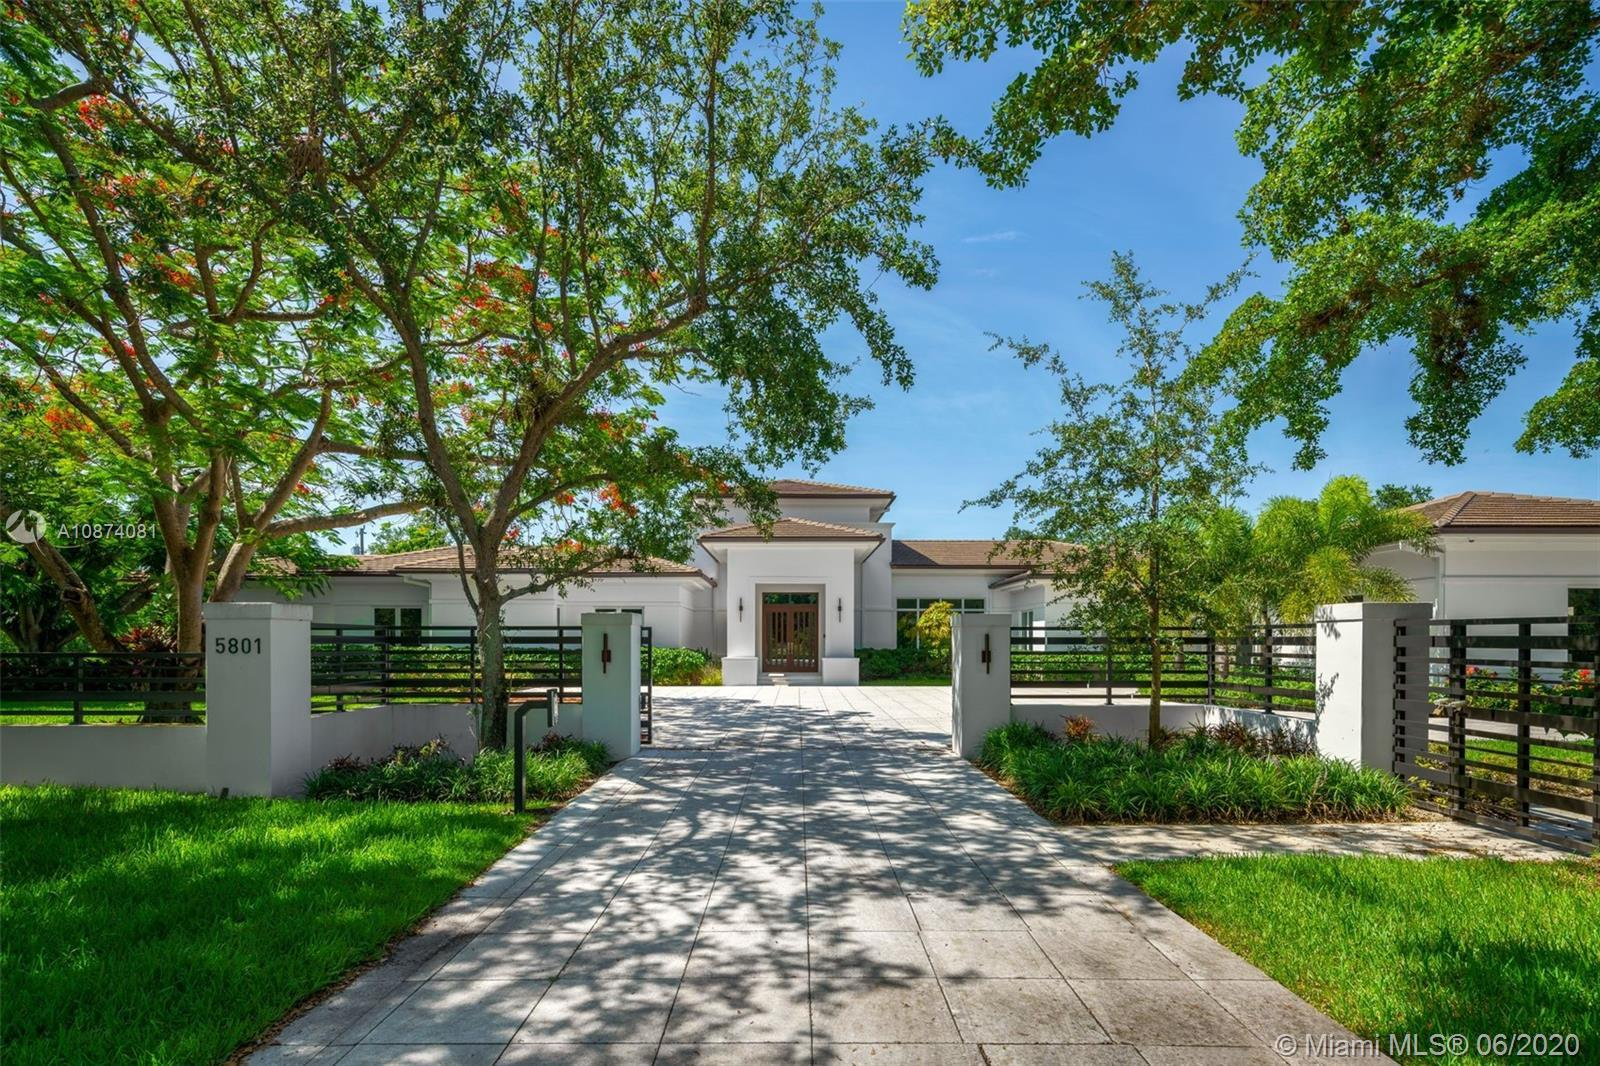 Brand new custom home poised for those w/a keen eye for detail & sophistication. Located on a quiet